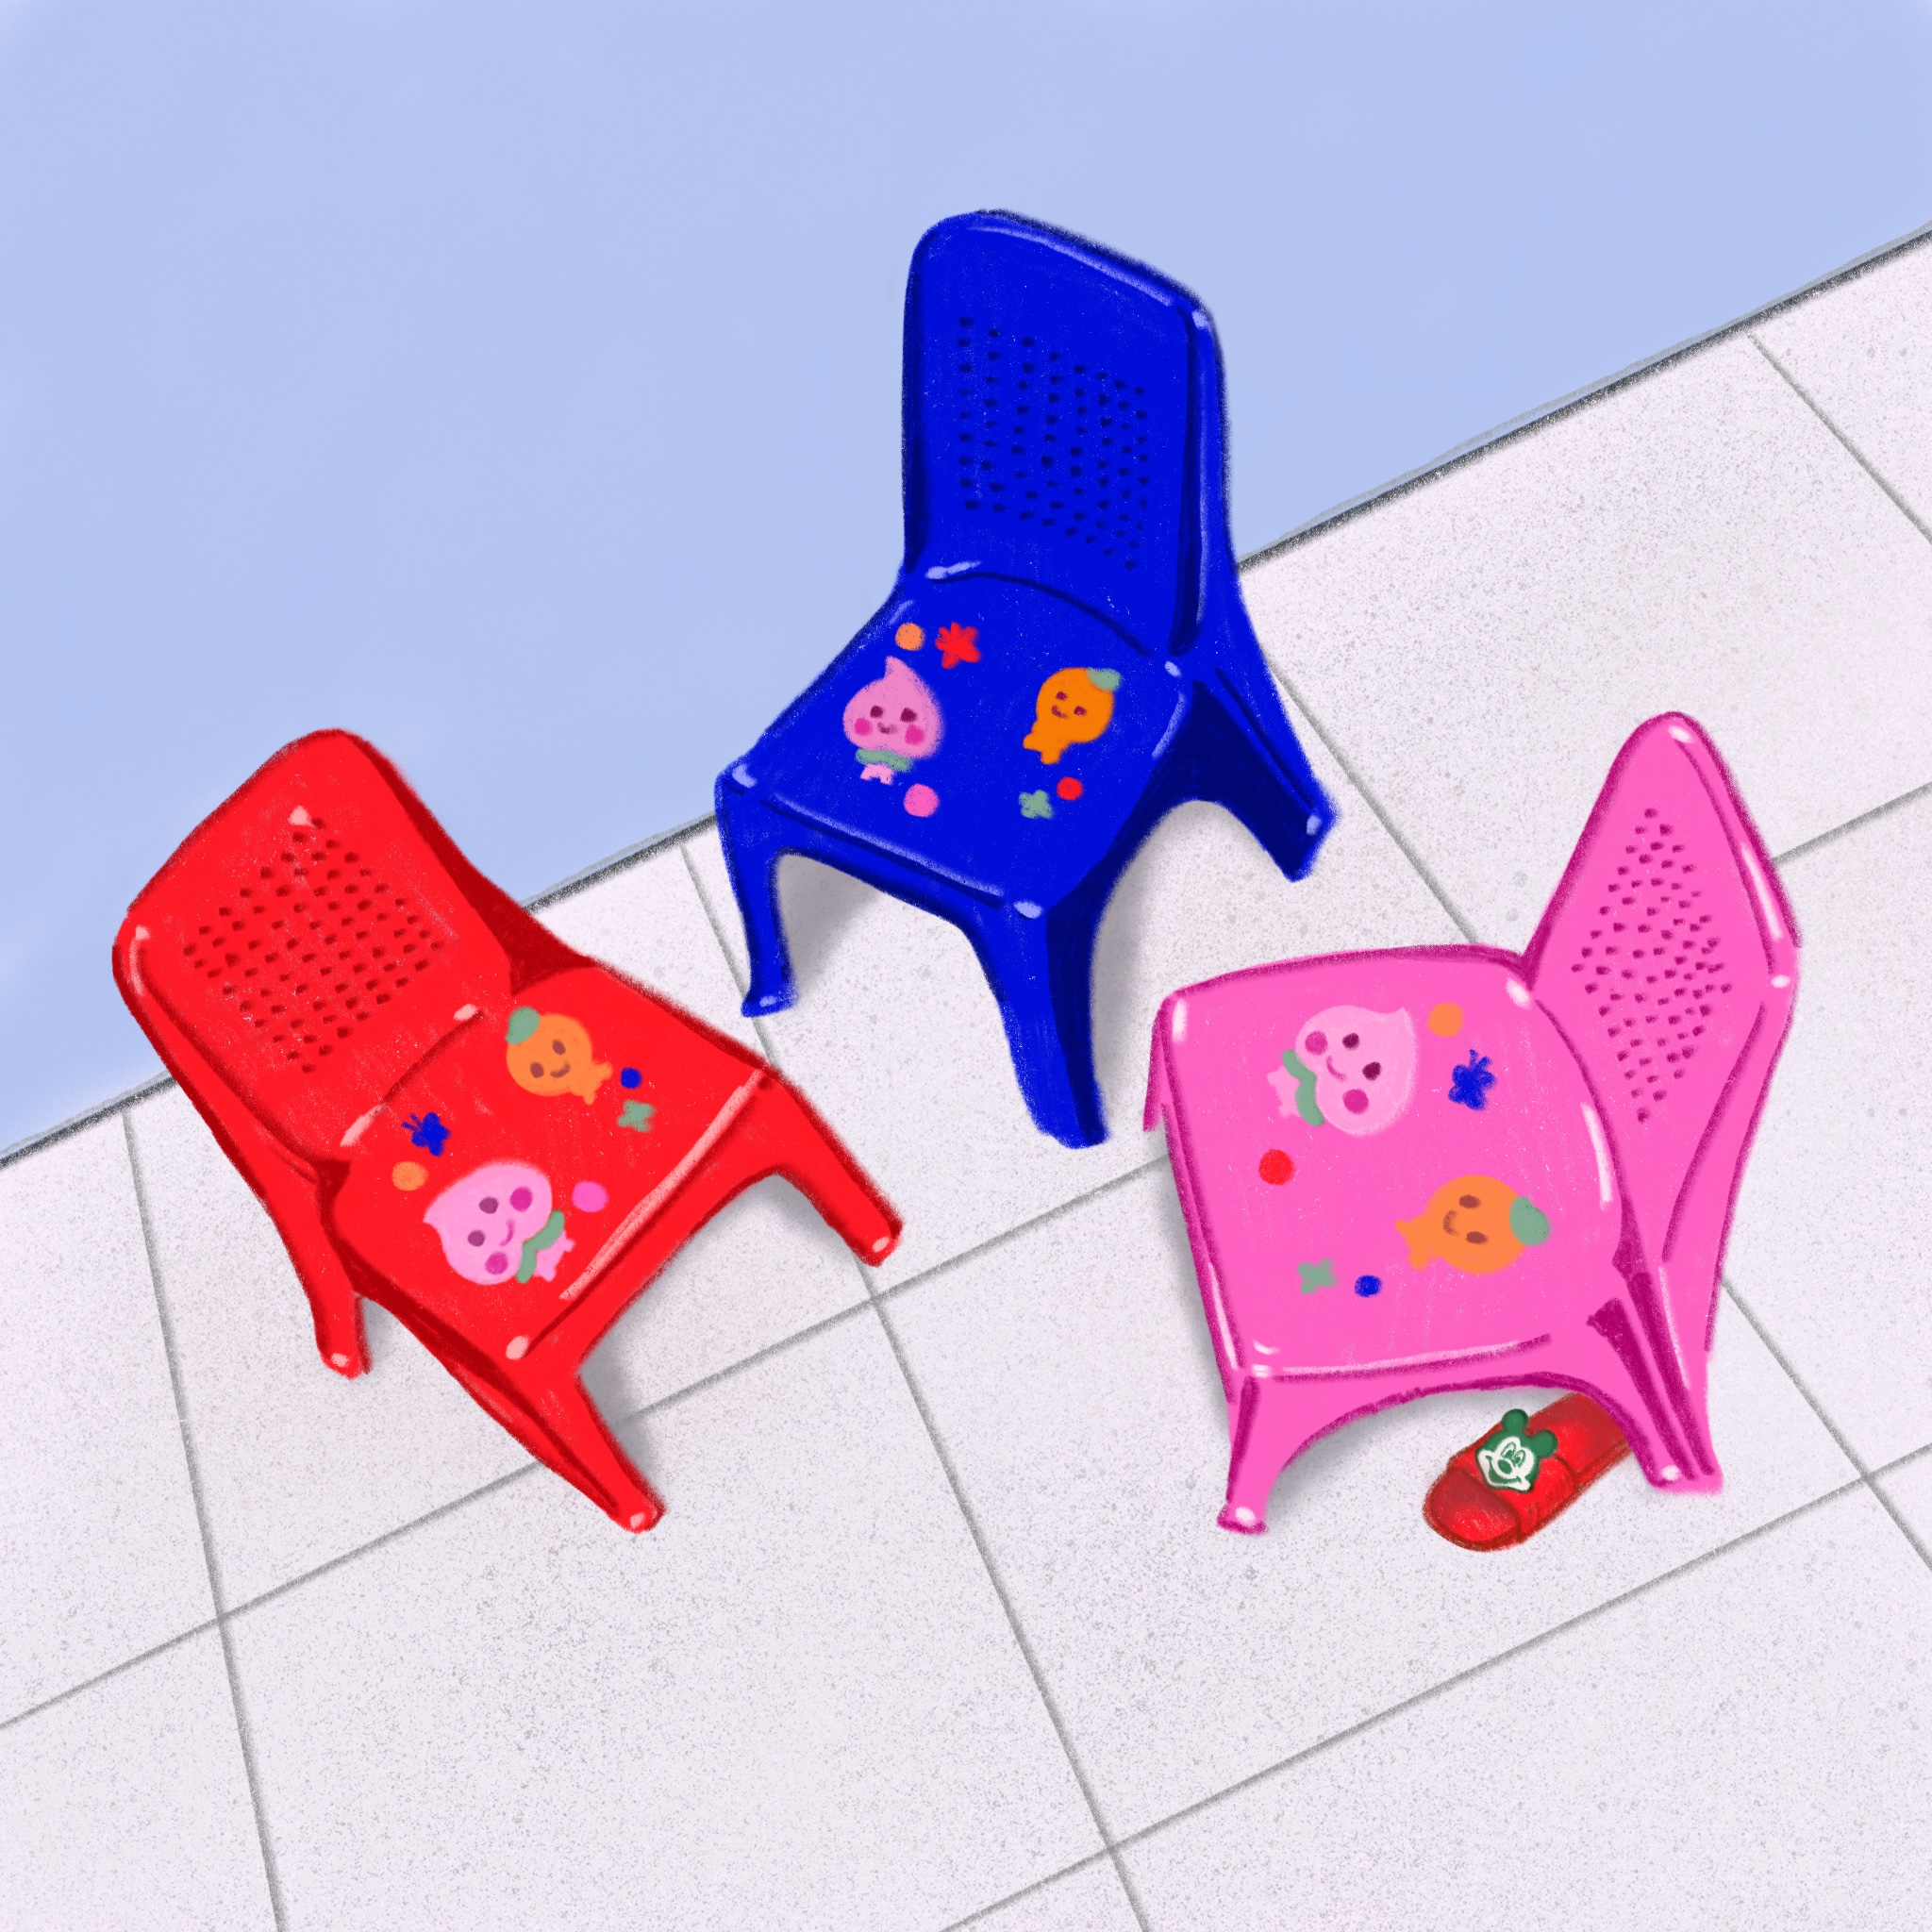 Plastic_Chairs.jpg